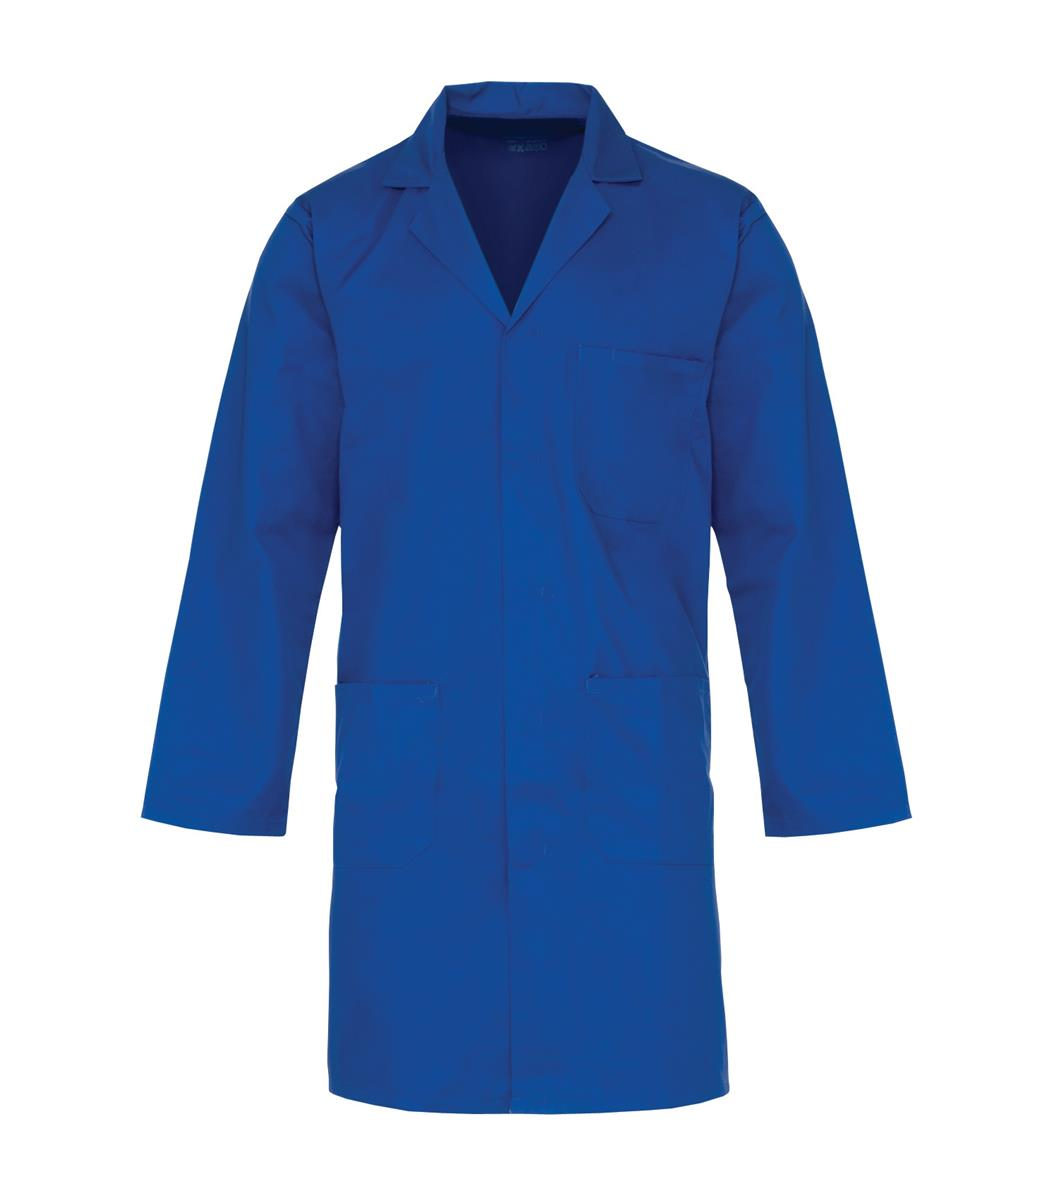 Supertouch Lab Coat Polycotton with 3 Pockets Extra Large Navy Ref 57014 Approx 3 Day Leadtime